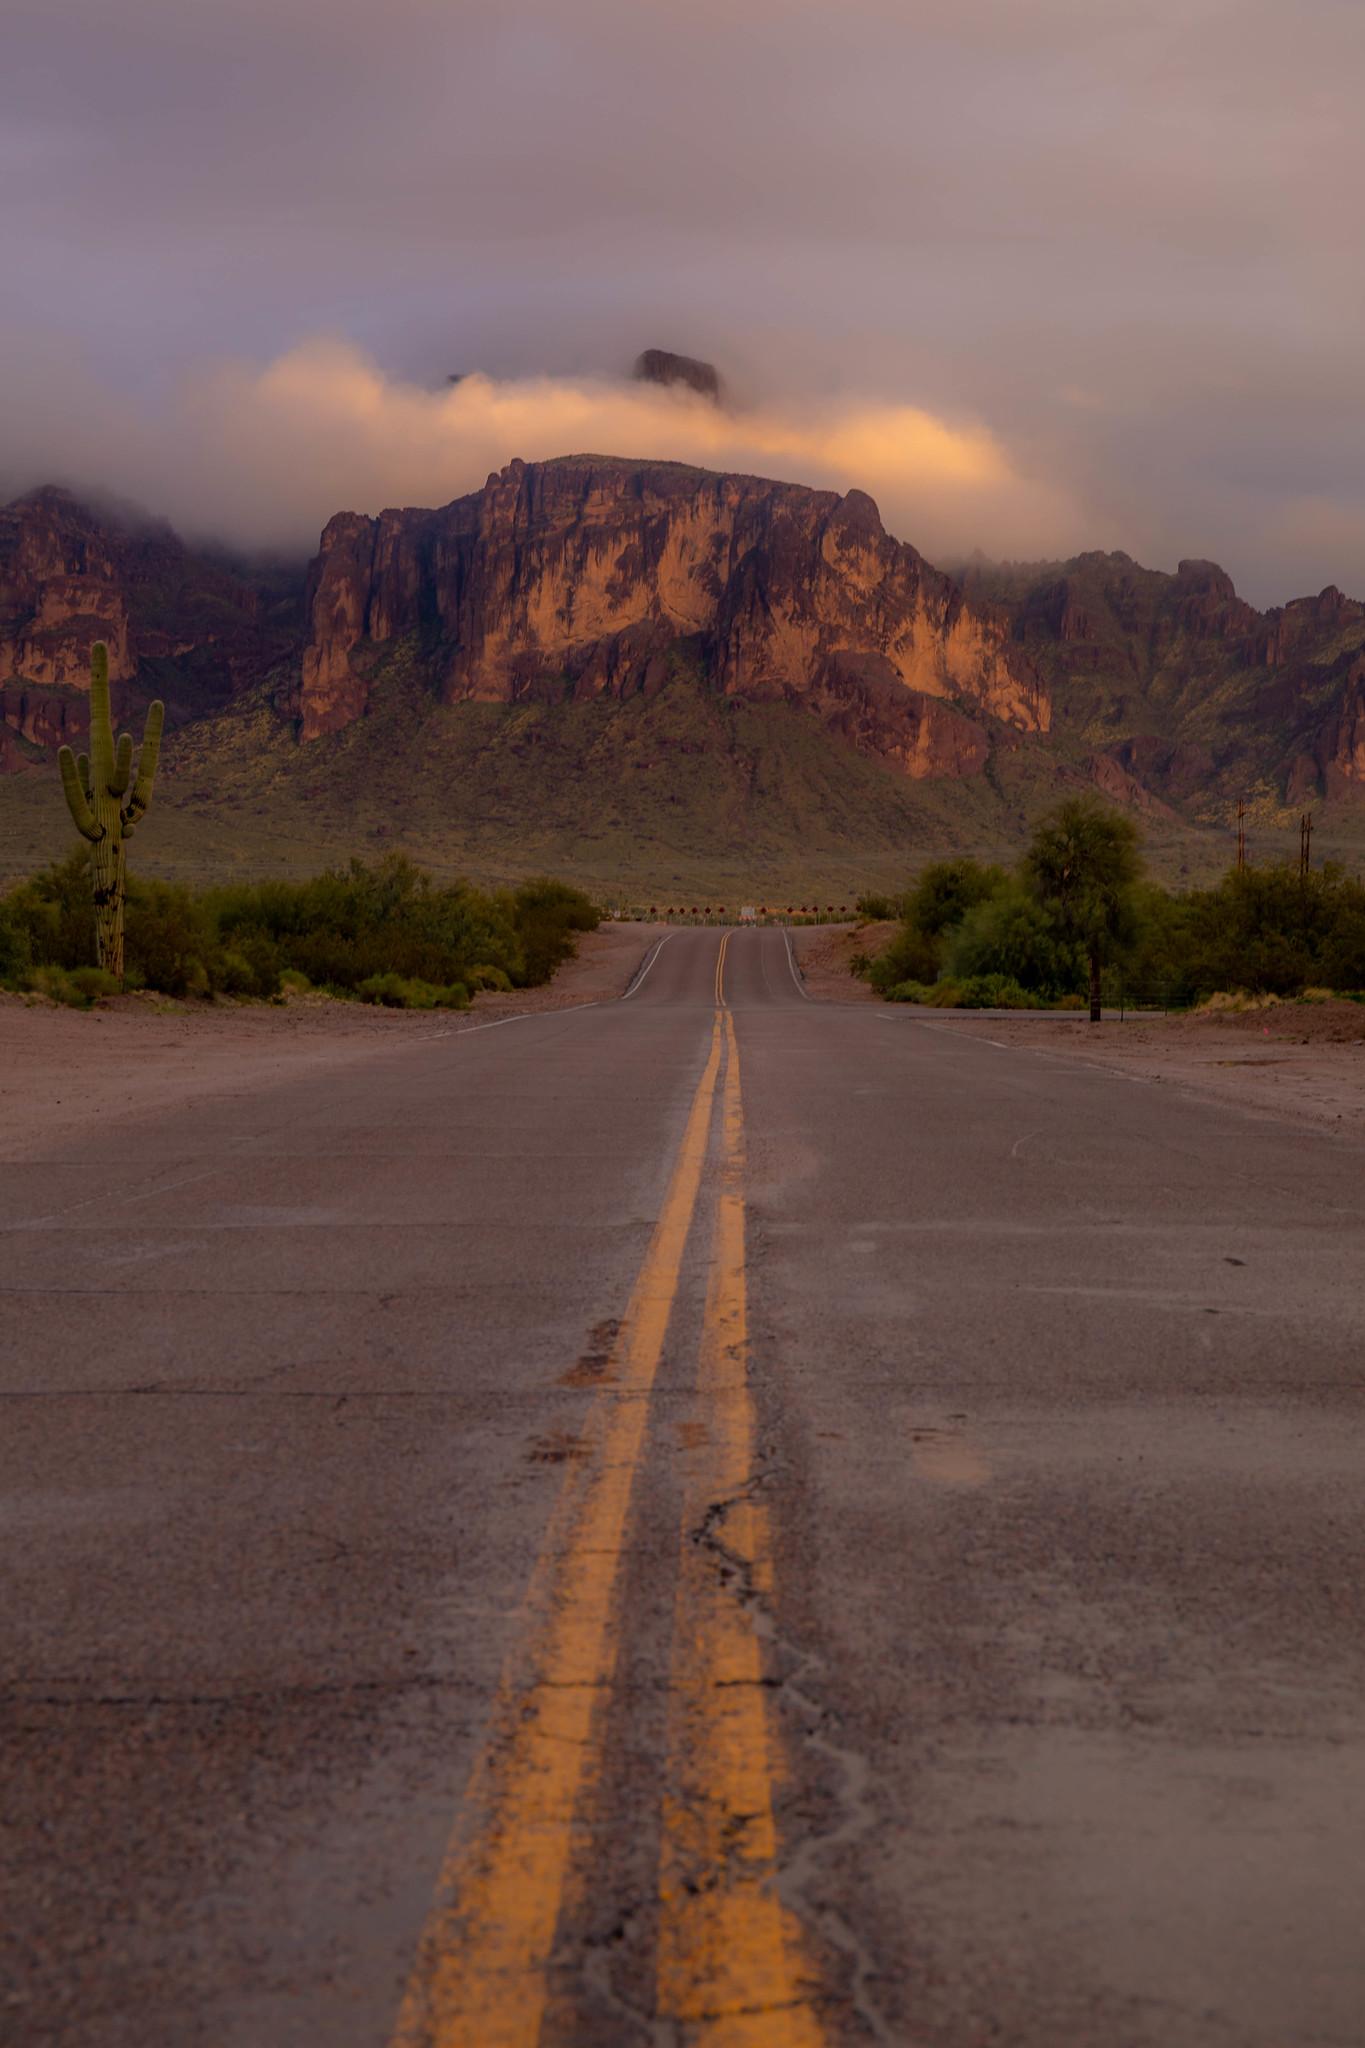 12.27. Superstition Mountains, Phoenix Area, Arizona